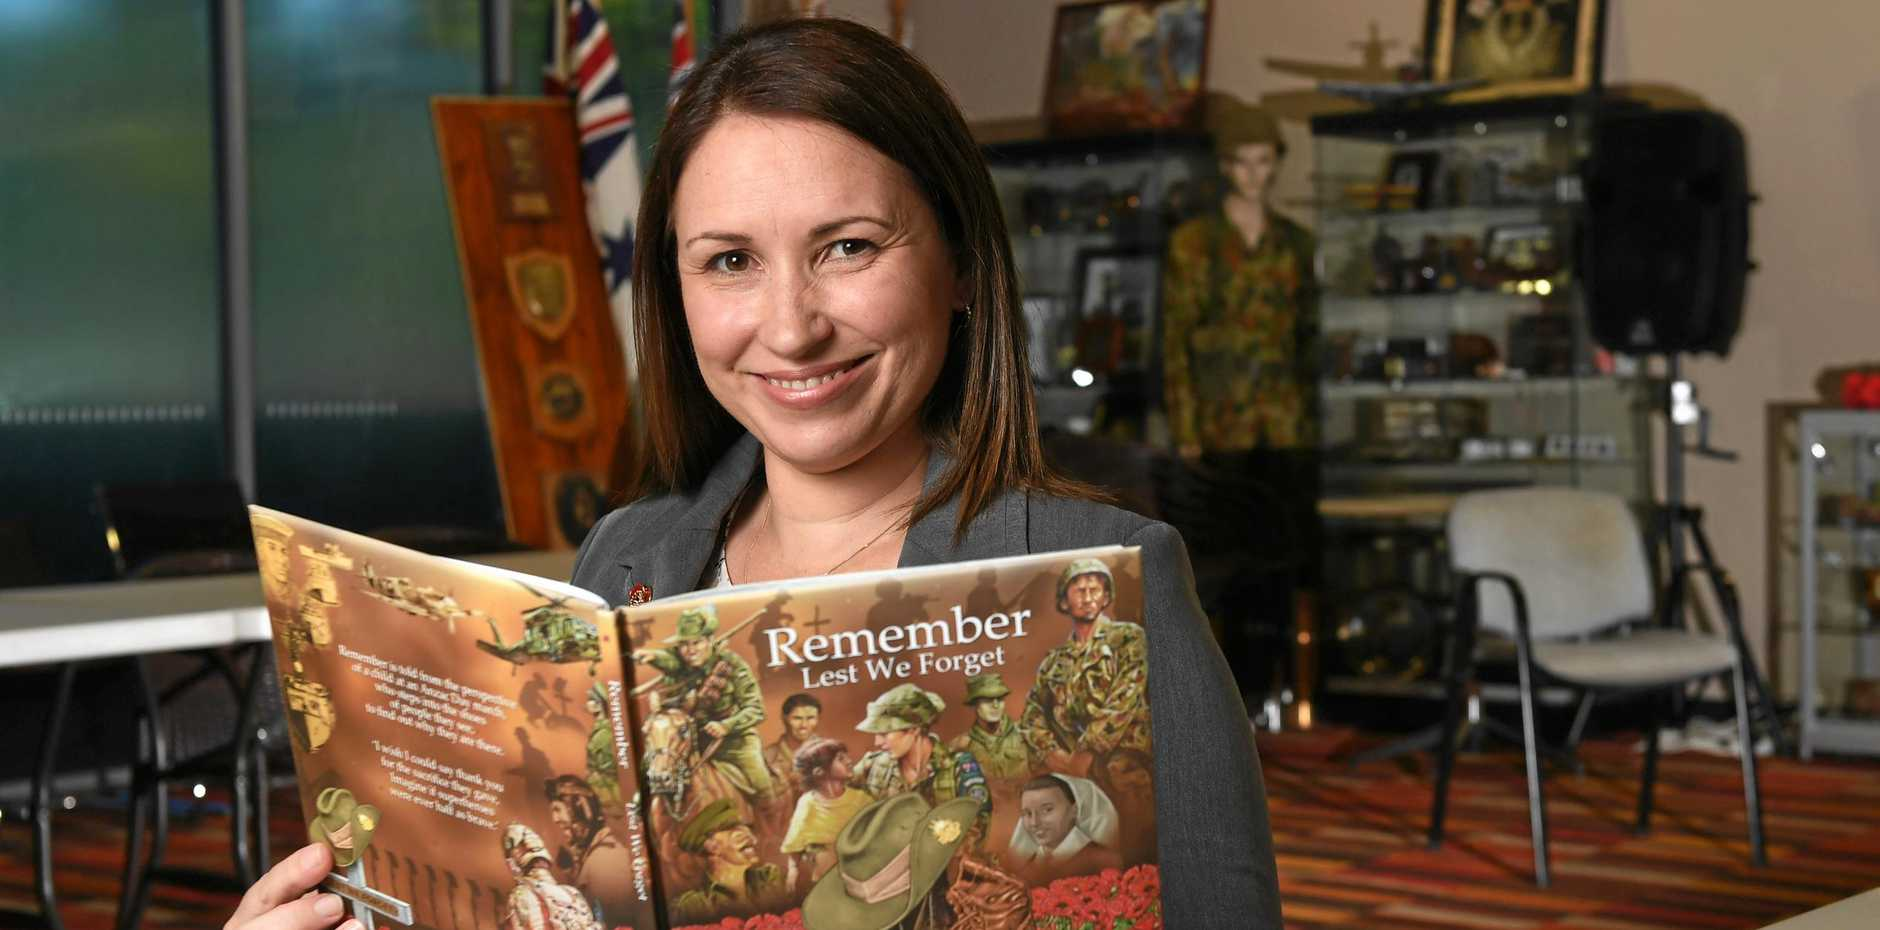 SAME PAGE: Julie Miller will donate all the proceeds from the sales of her book, Remember, to the RSL. She will launch her first book in Goodna today.